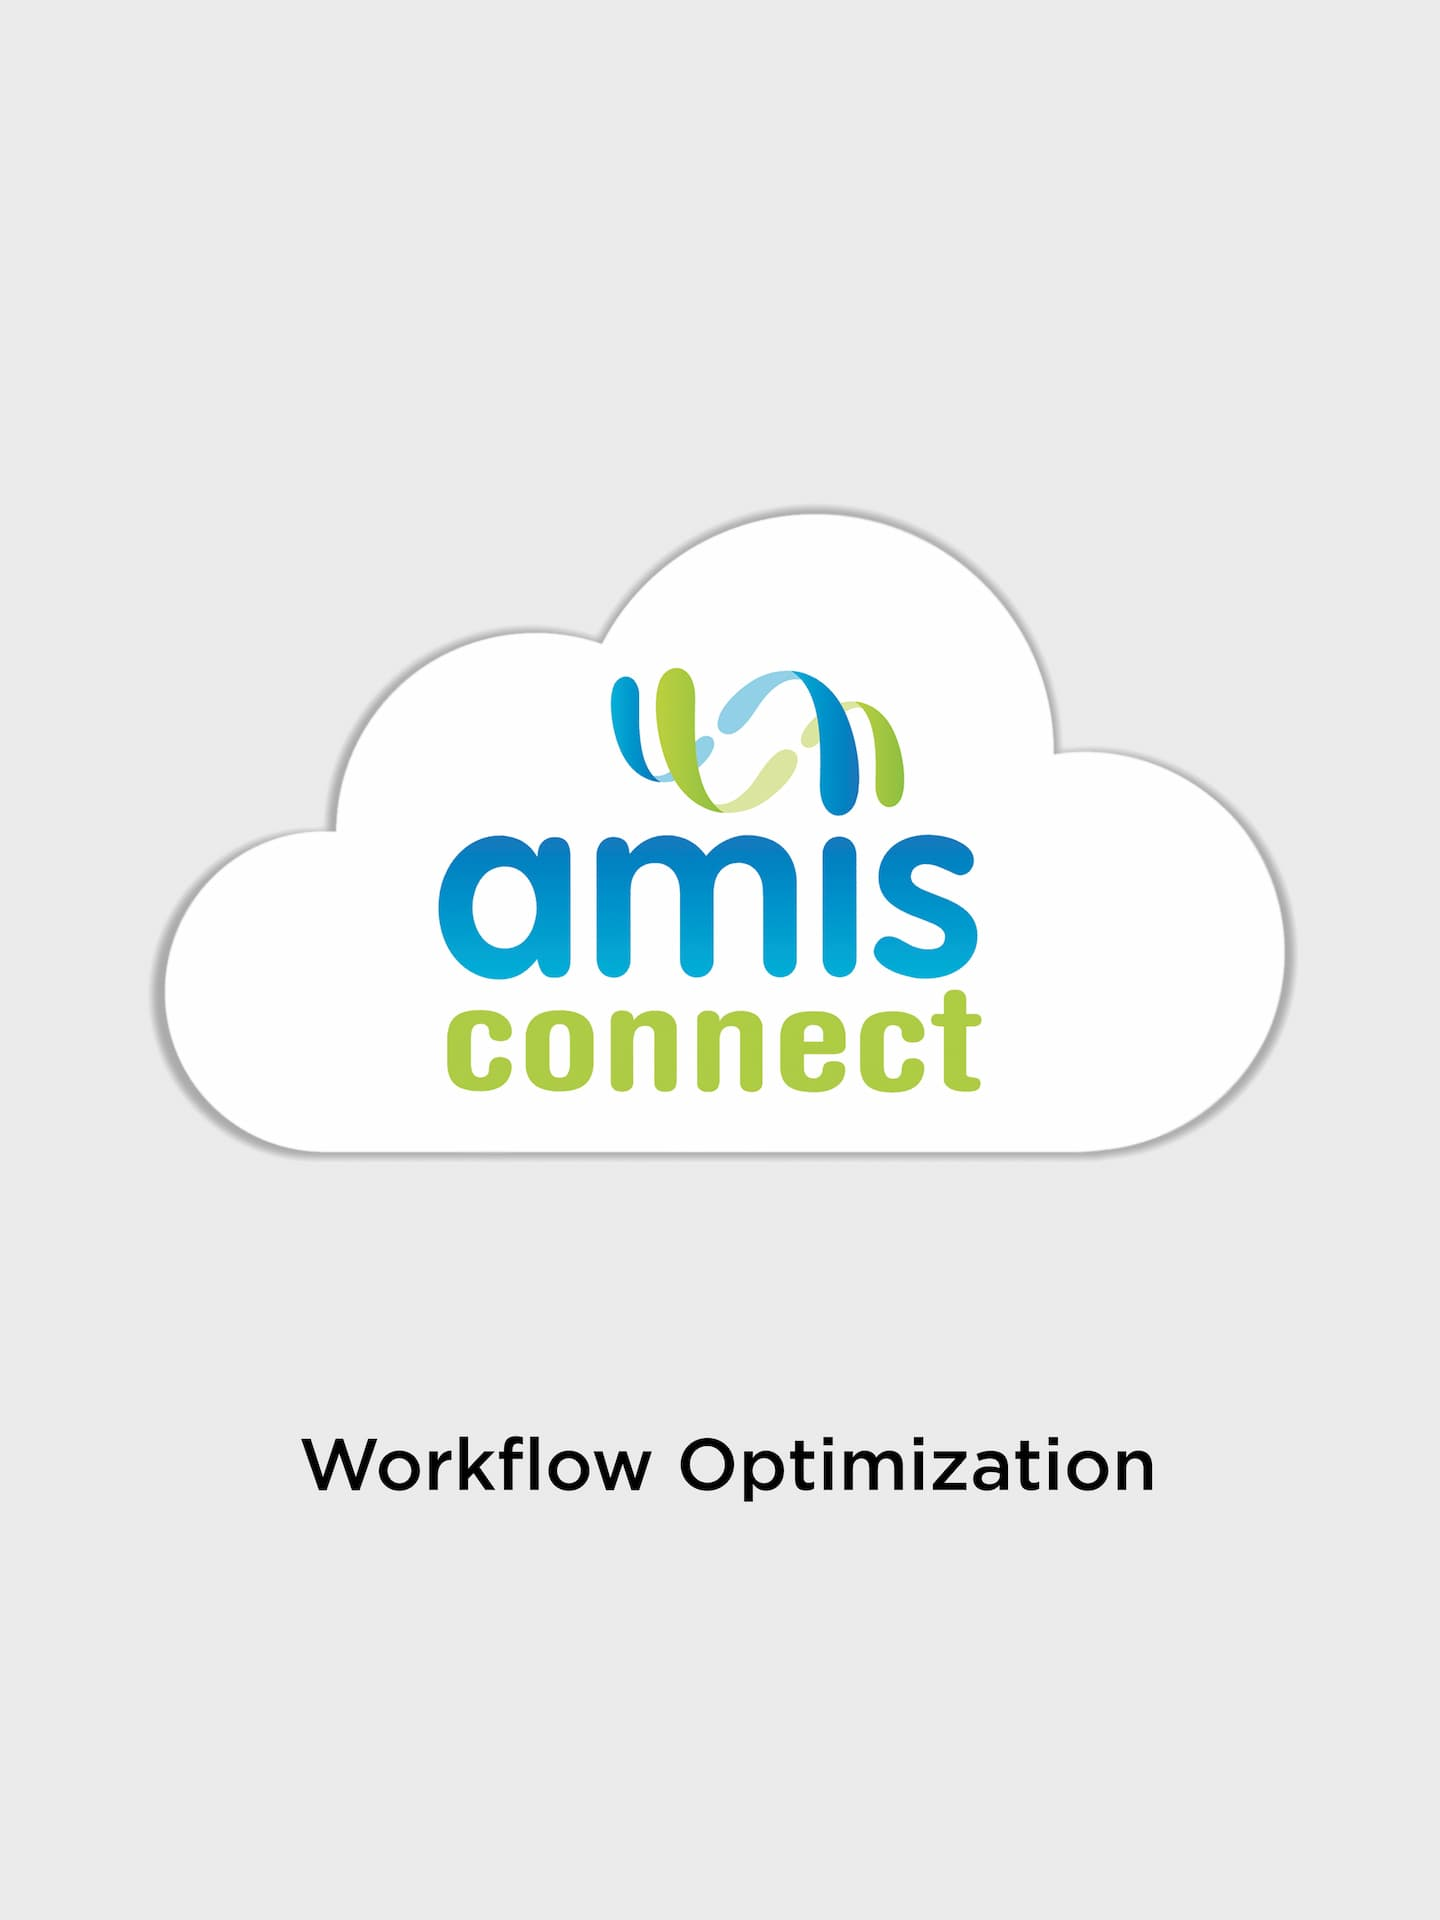 amis connect workflow optimization